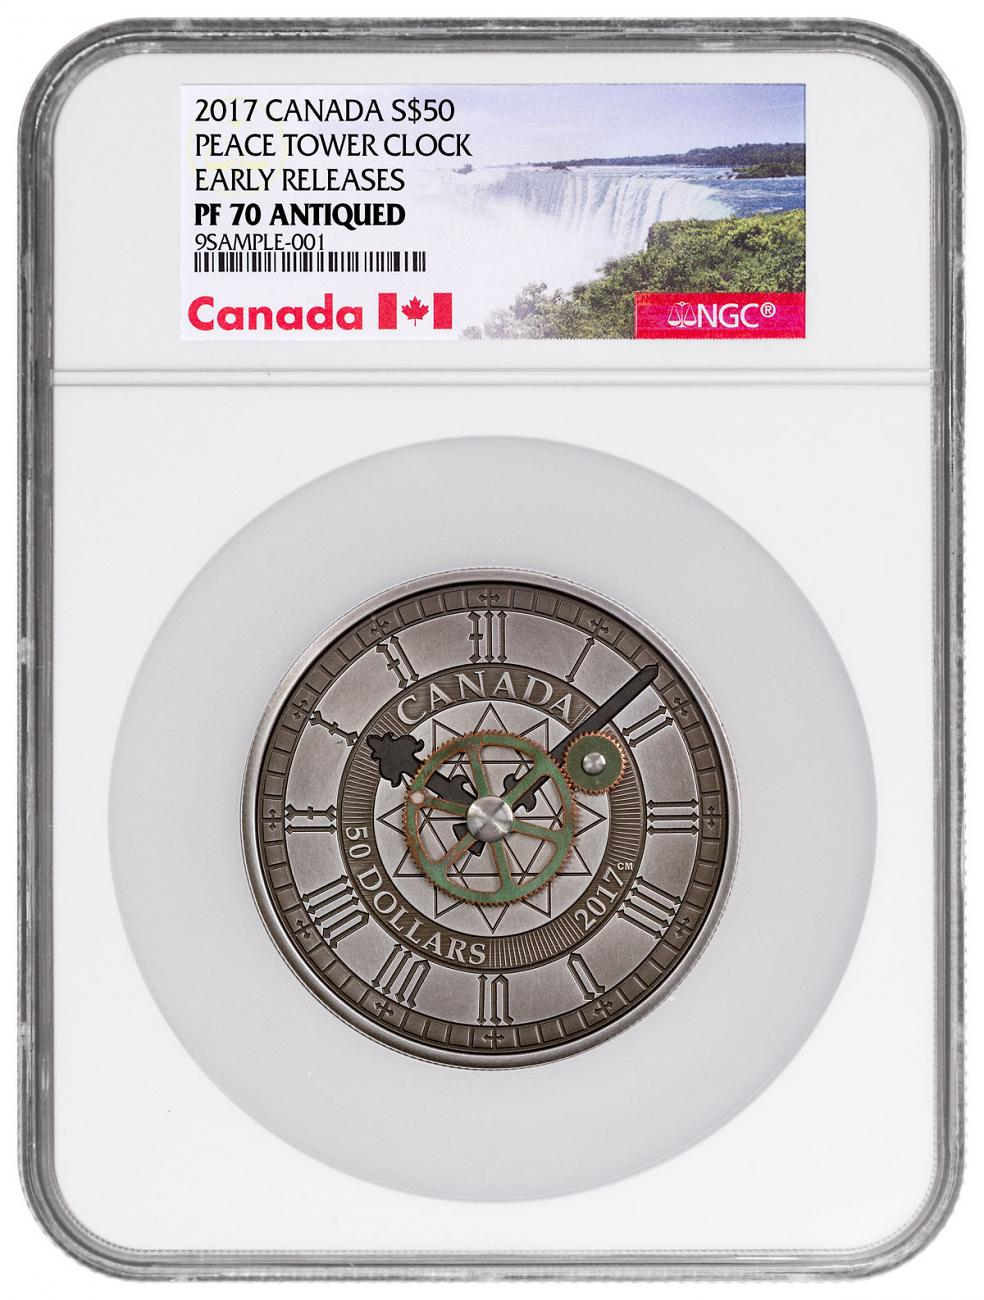 2017 Canada Peace Tower Clock 90th Anniversary - 5 oz Silver Antiqued $50 Coin NGC PF70 ER